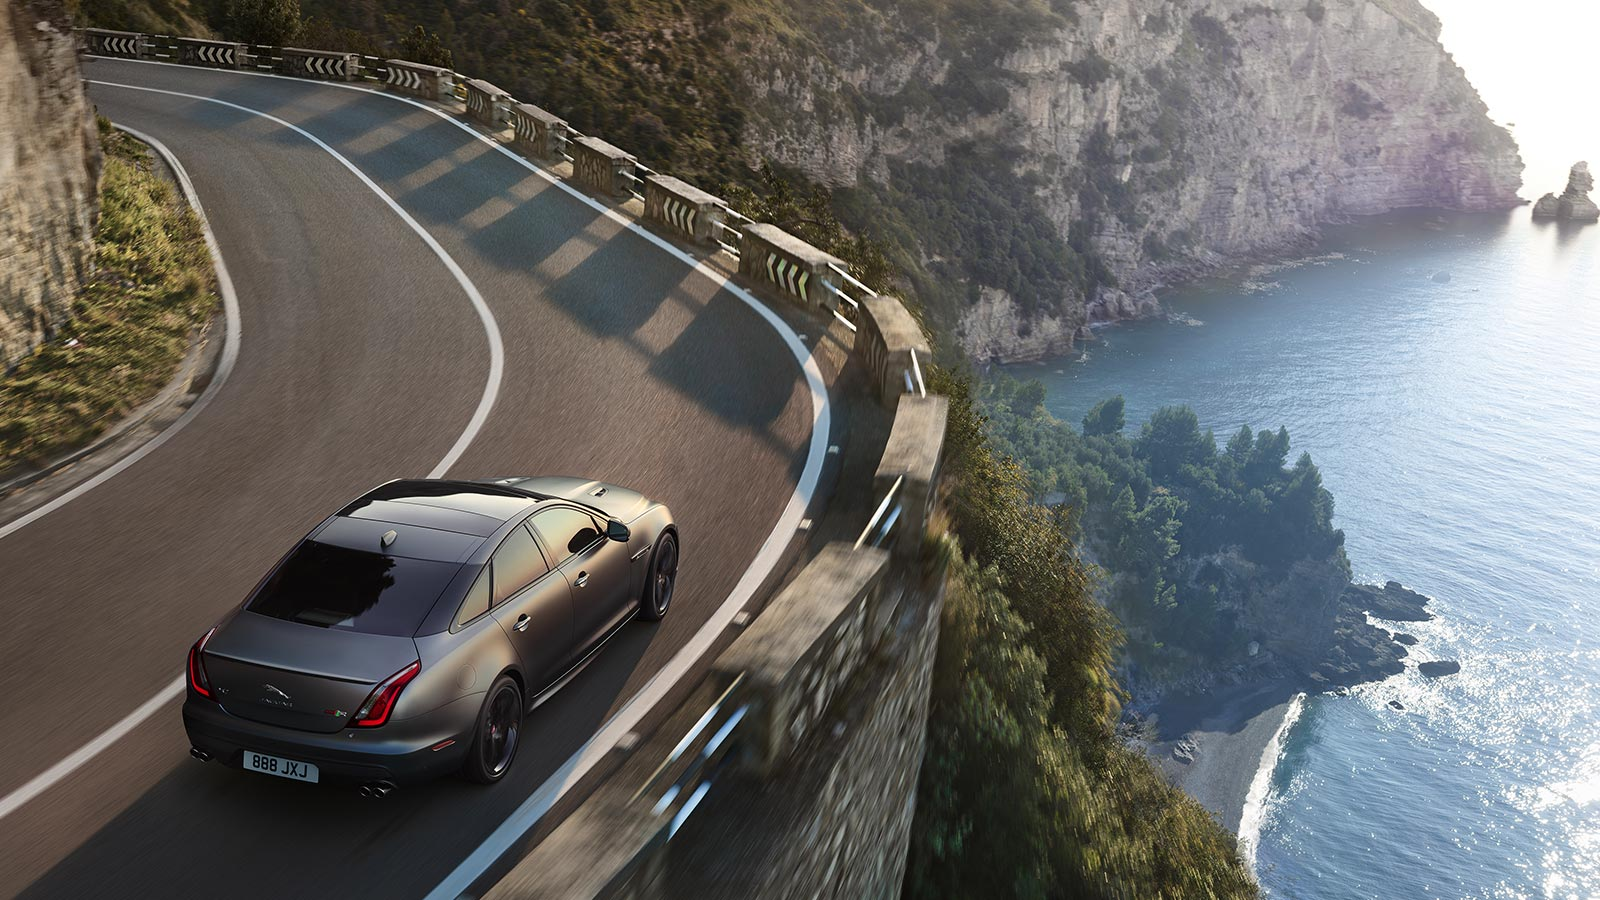 High view of jaguar driving on-road by the sea.